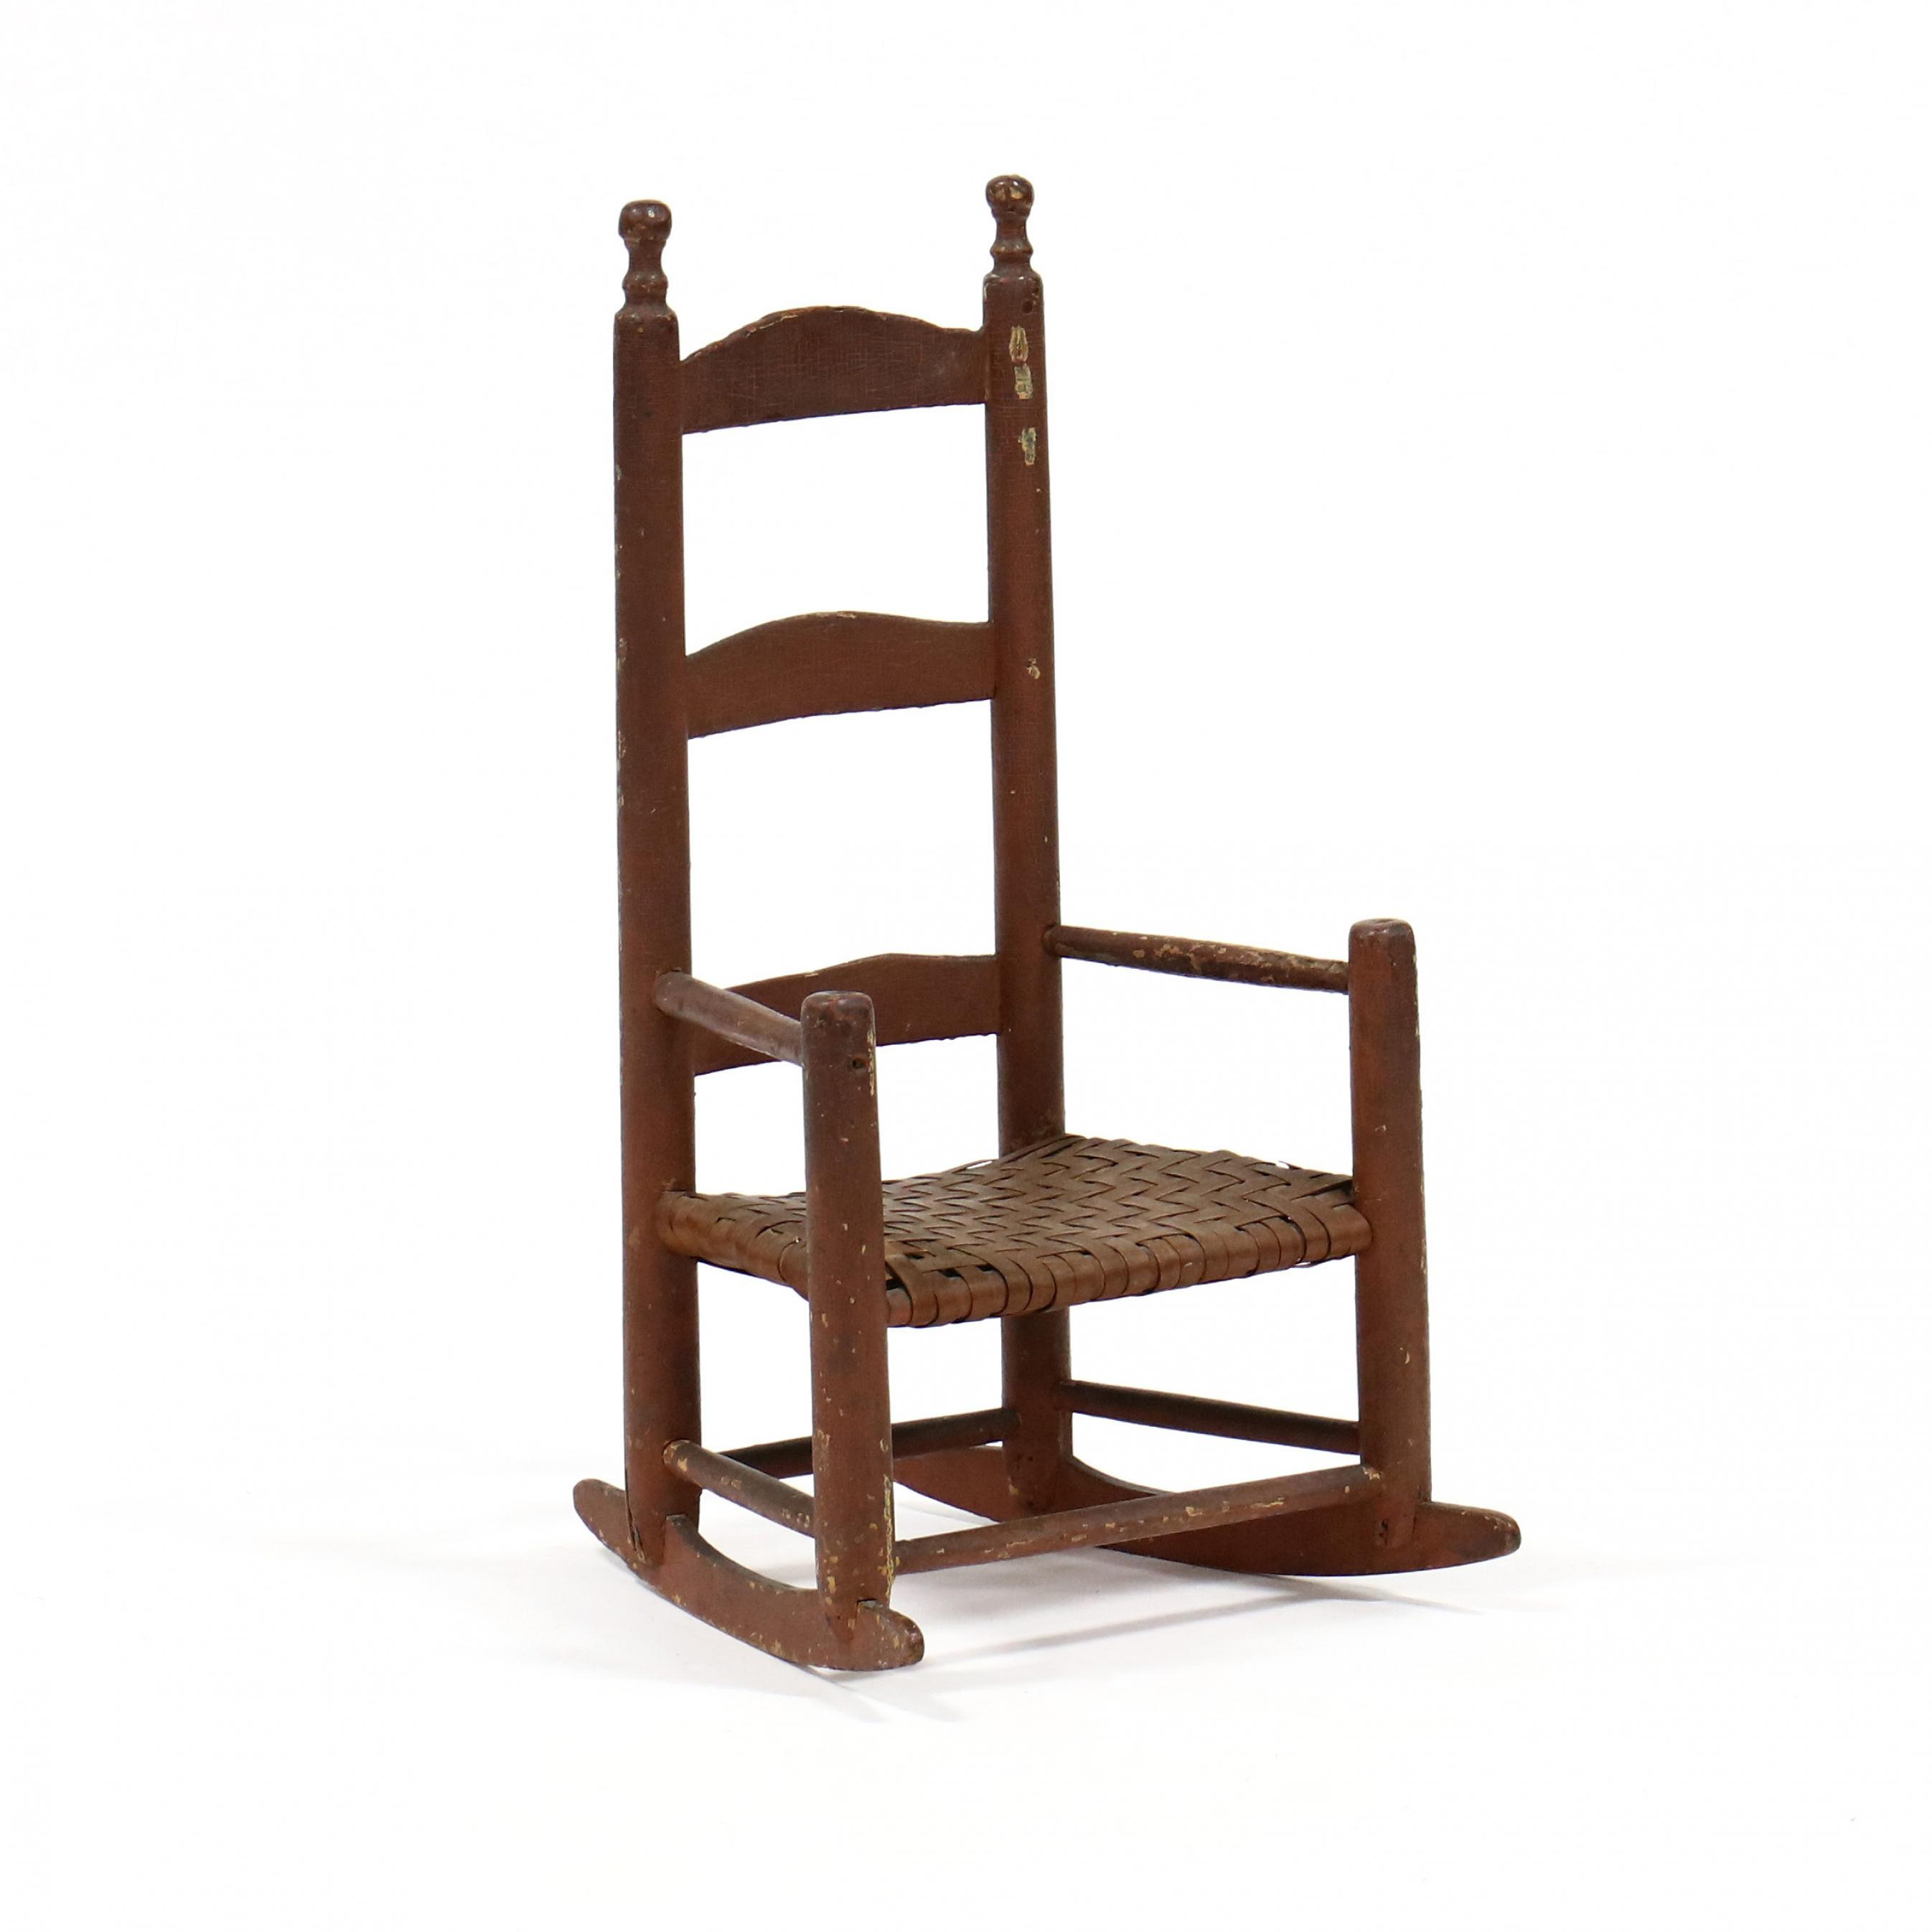 american-folky-painted-child-s-rocking-chair